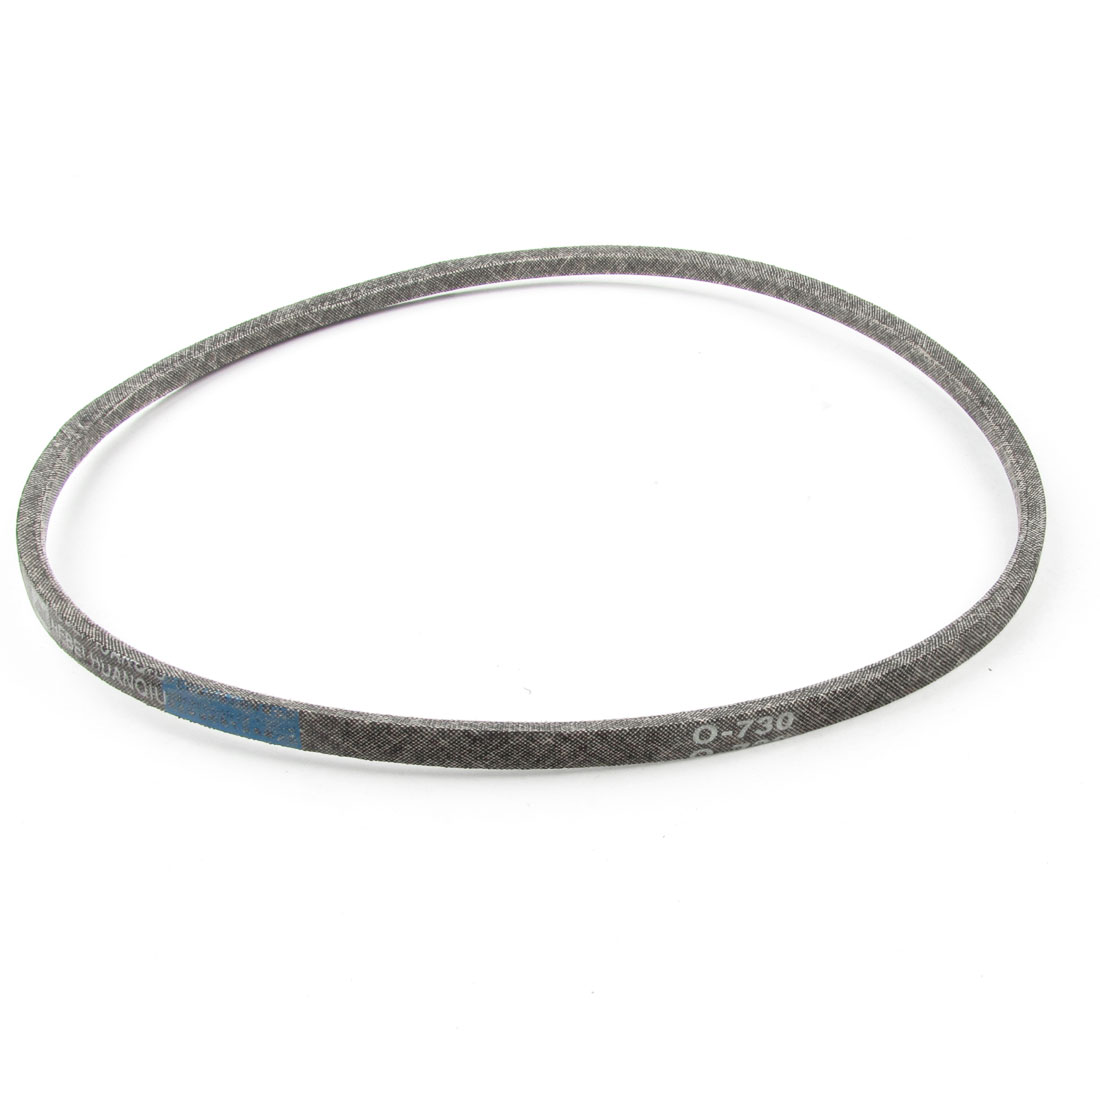 "Washer Machine Drive Belt O-730E 6mm Inner Wide 73cm 29 7/64"" Inner Girth"